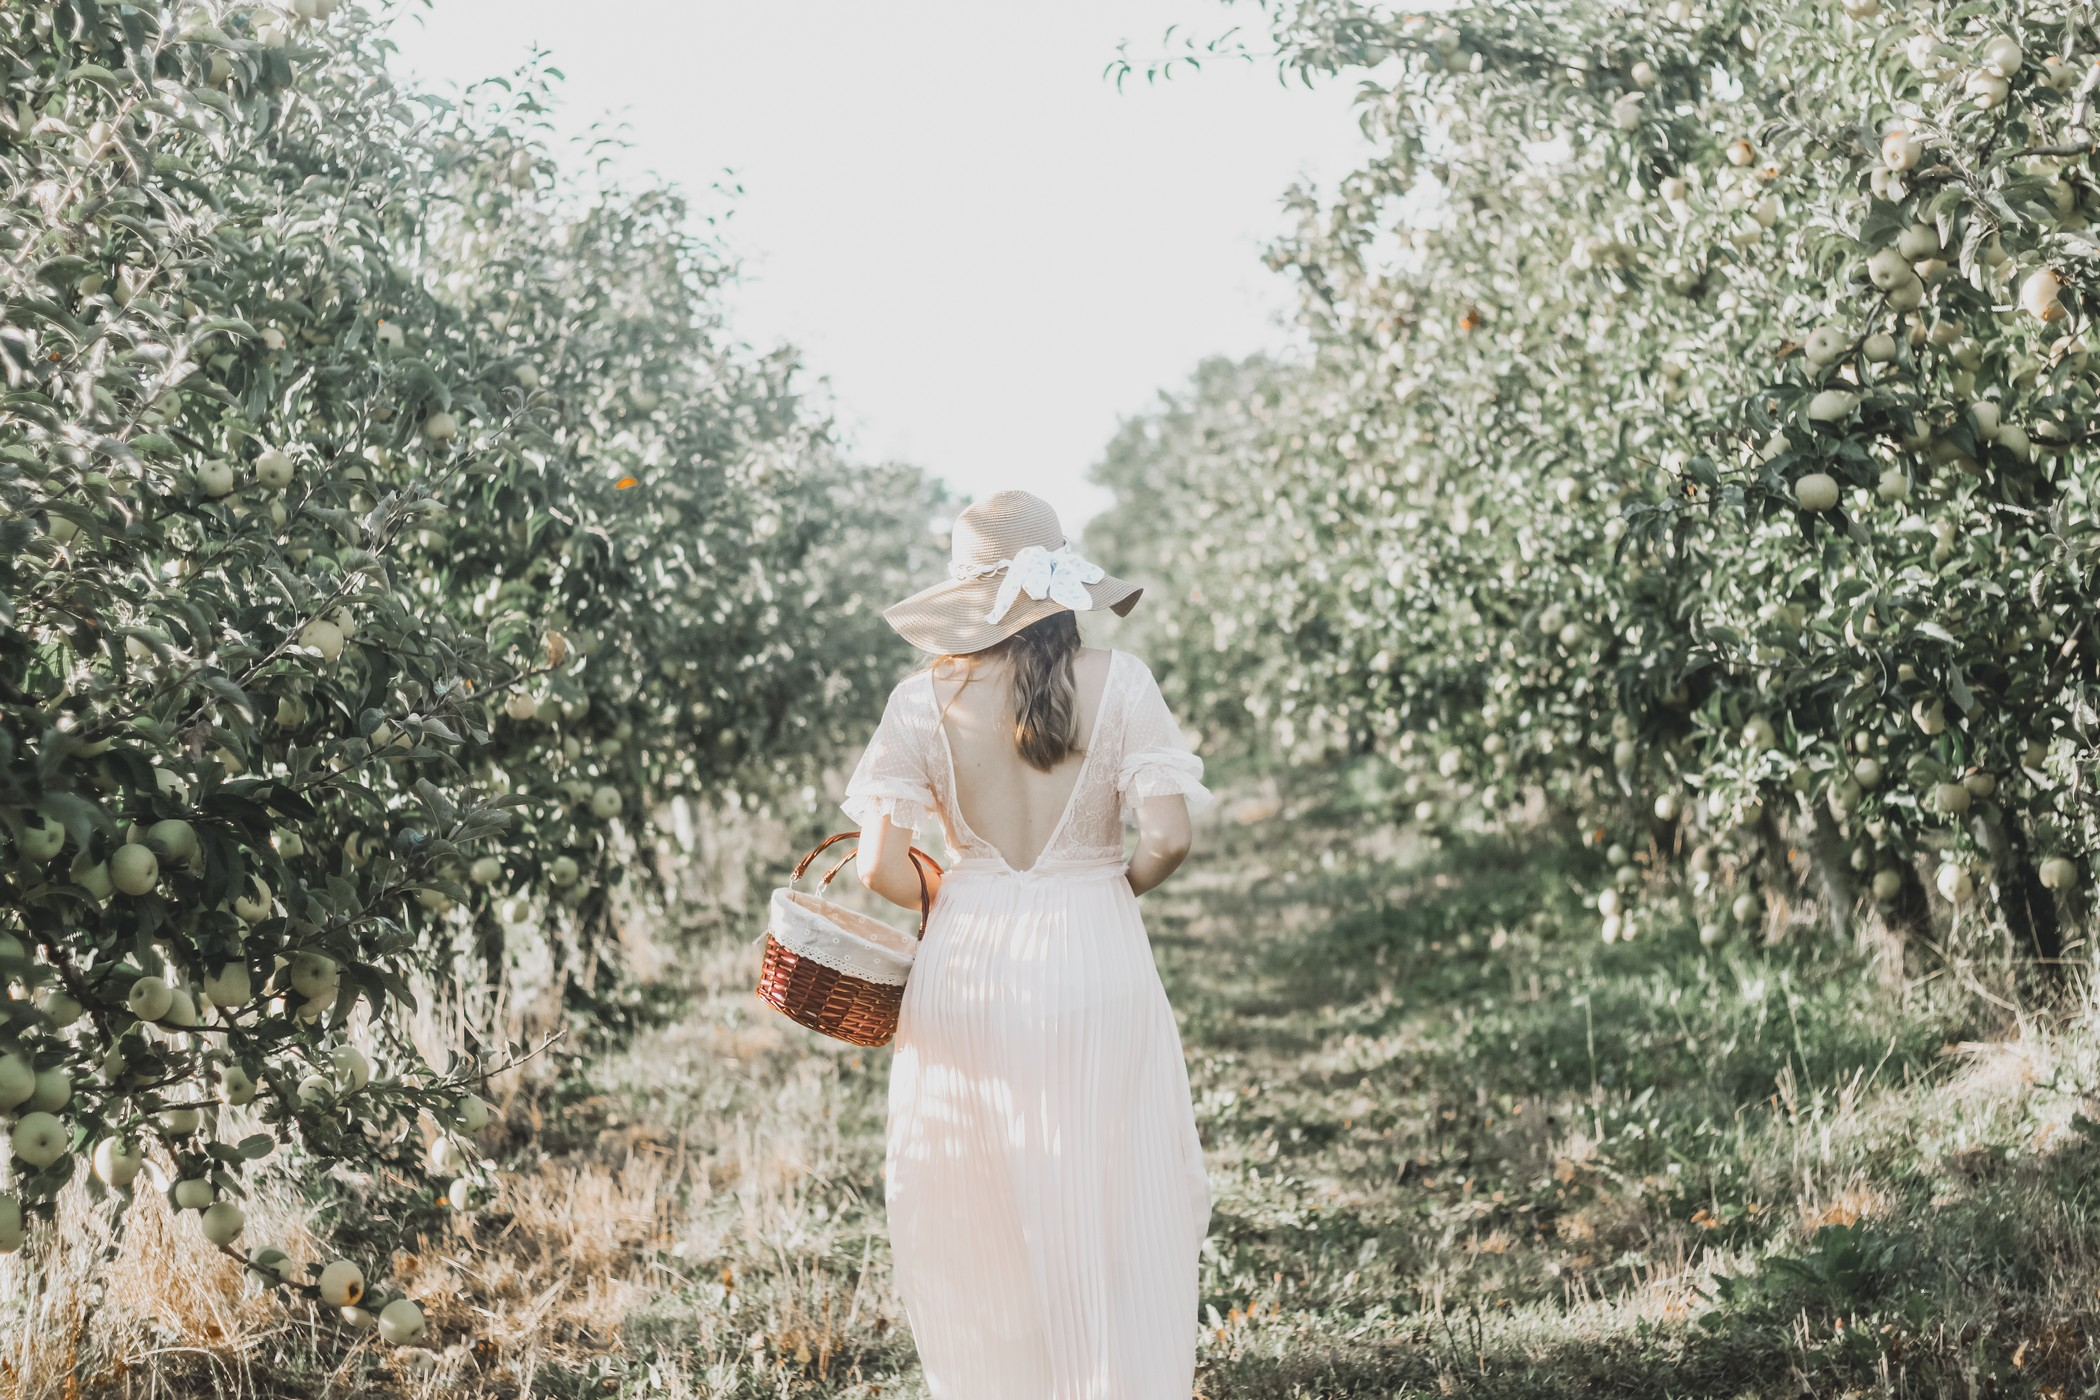 Nude long dress and apple tree